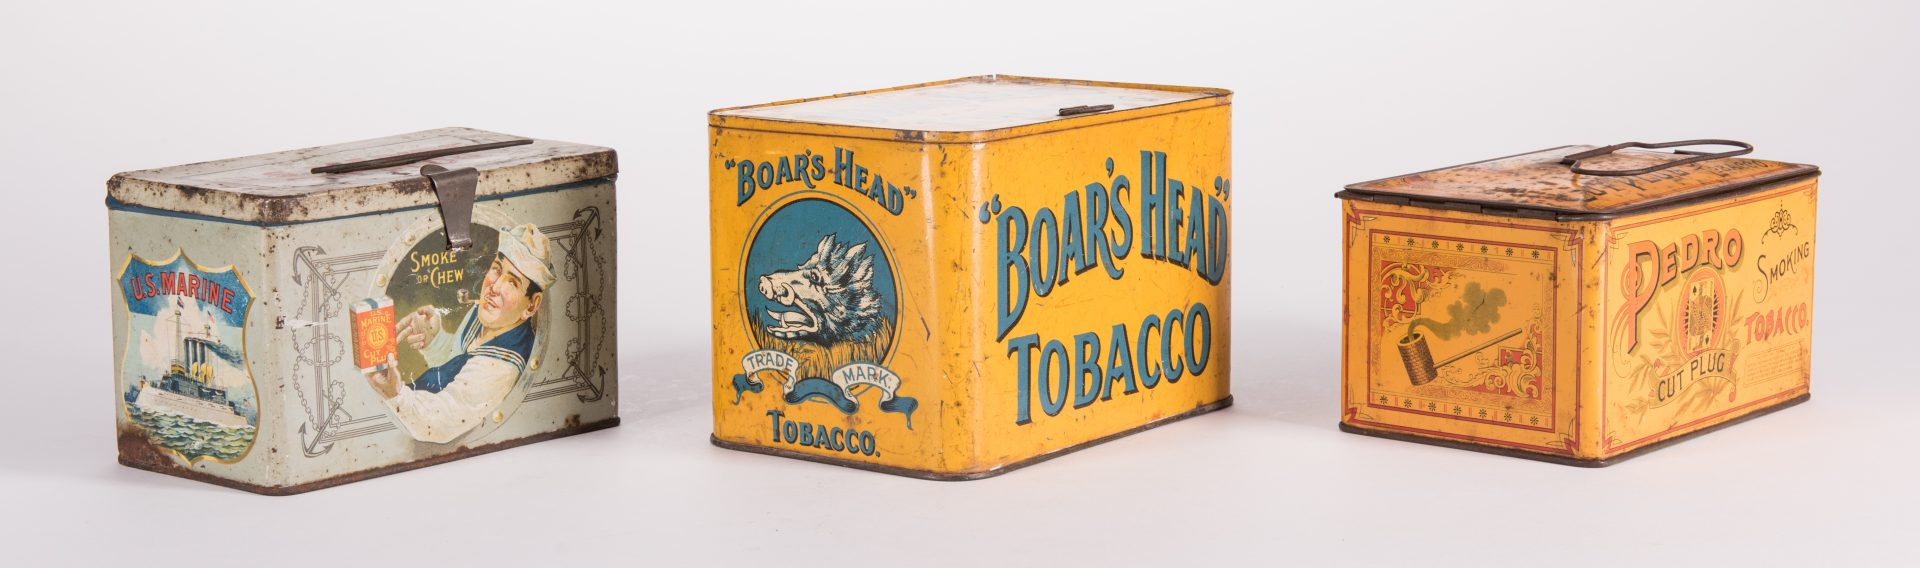 Lot 801: 9 Advertising Tobacco Ephemera, inc. Tins and Wrappers